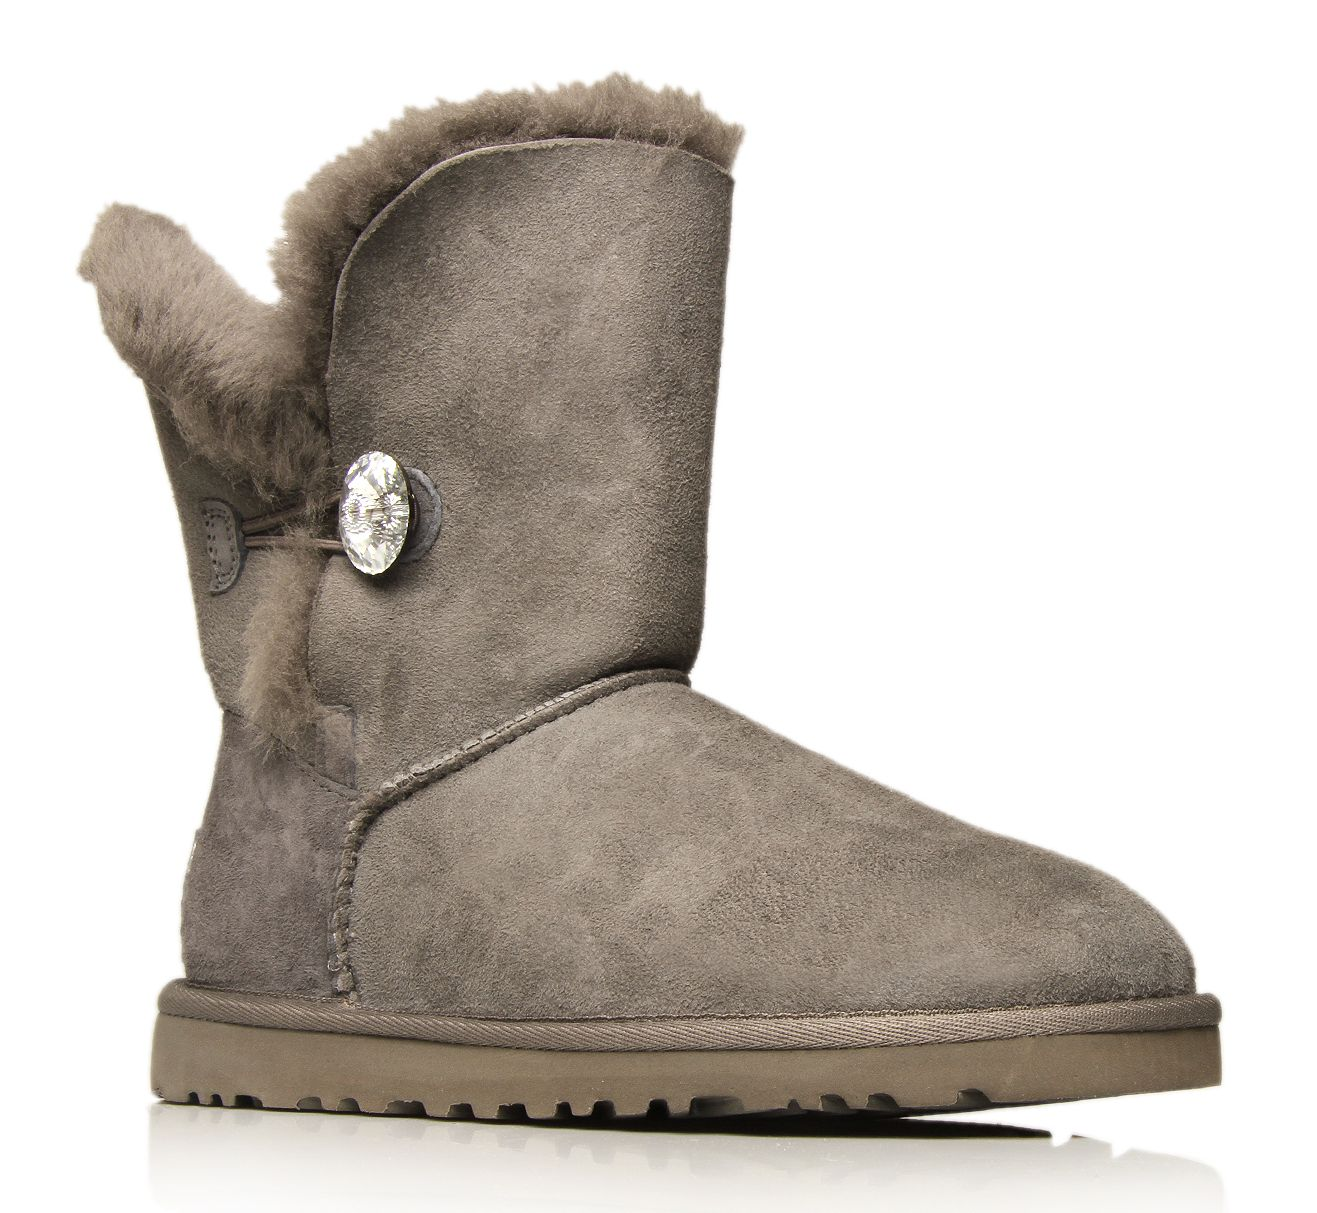 96c0aa9a7a1 Ugg Style Boots With Bling - cheap watches mgc-gas.com